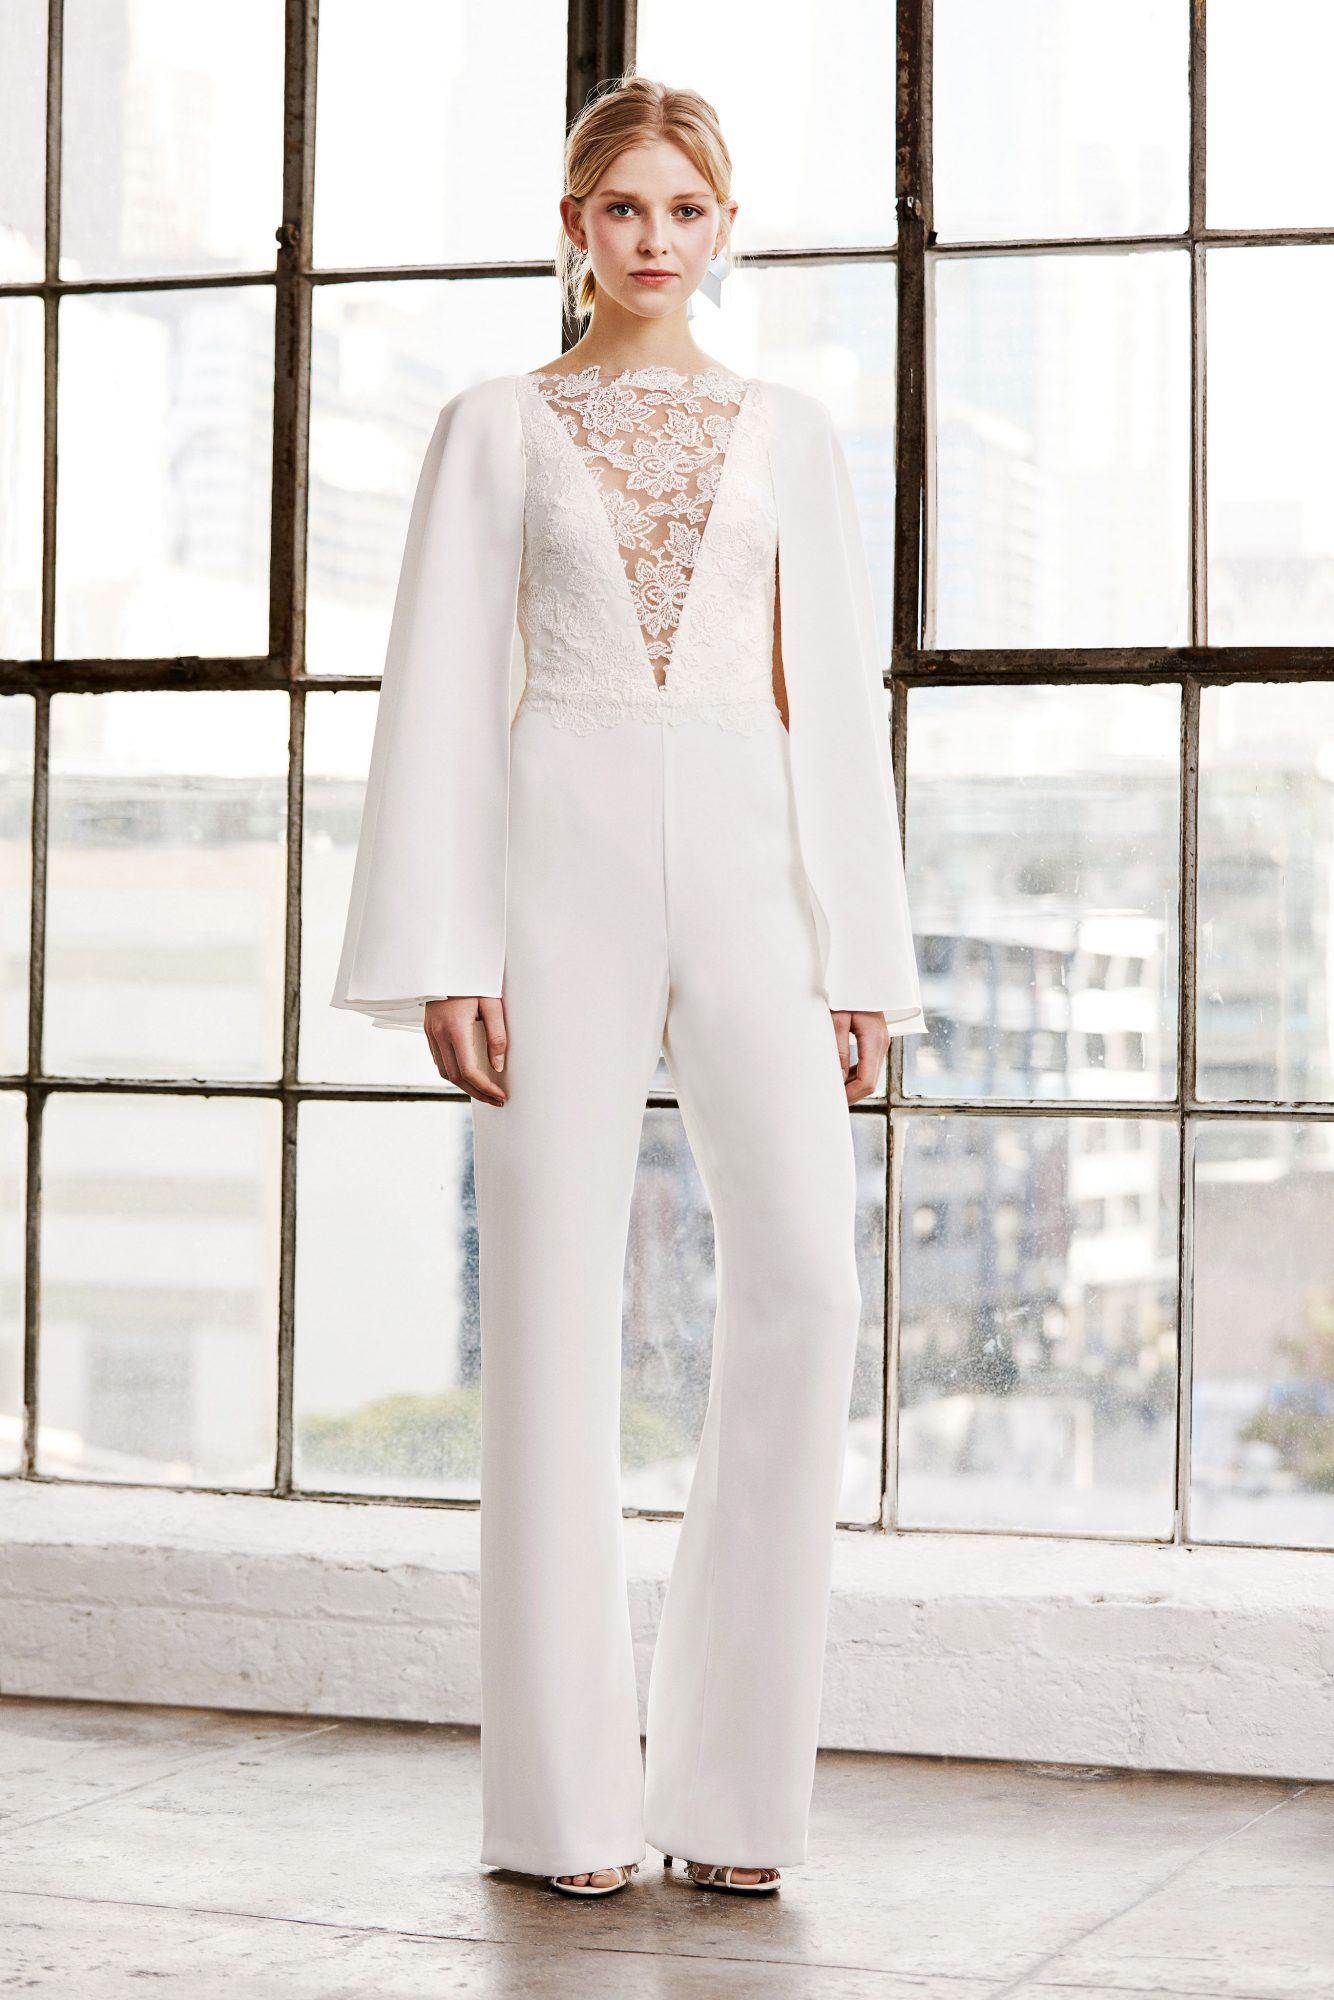 71 Chic Wedding Suits For Brides Martha Stewart